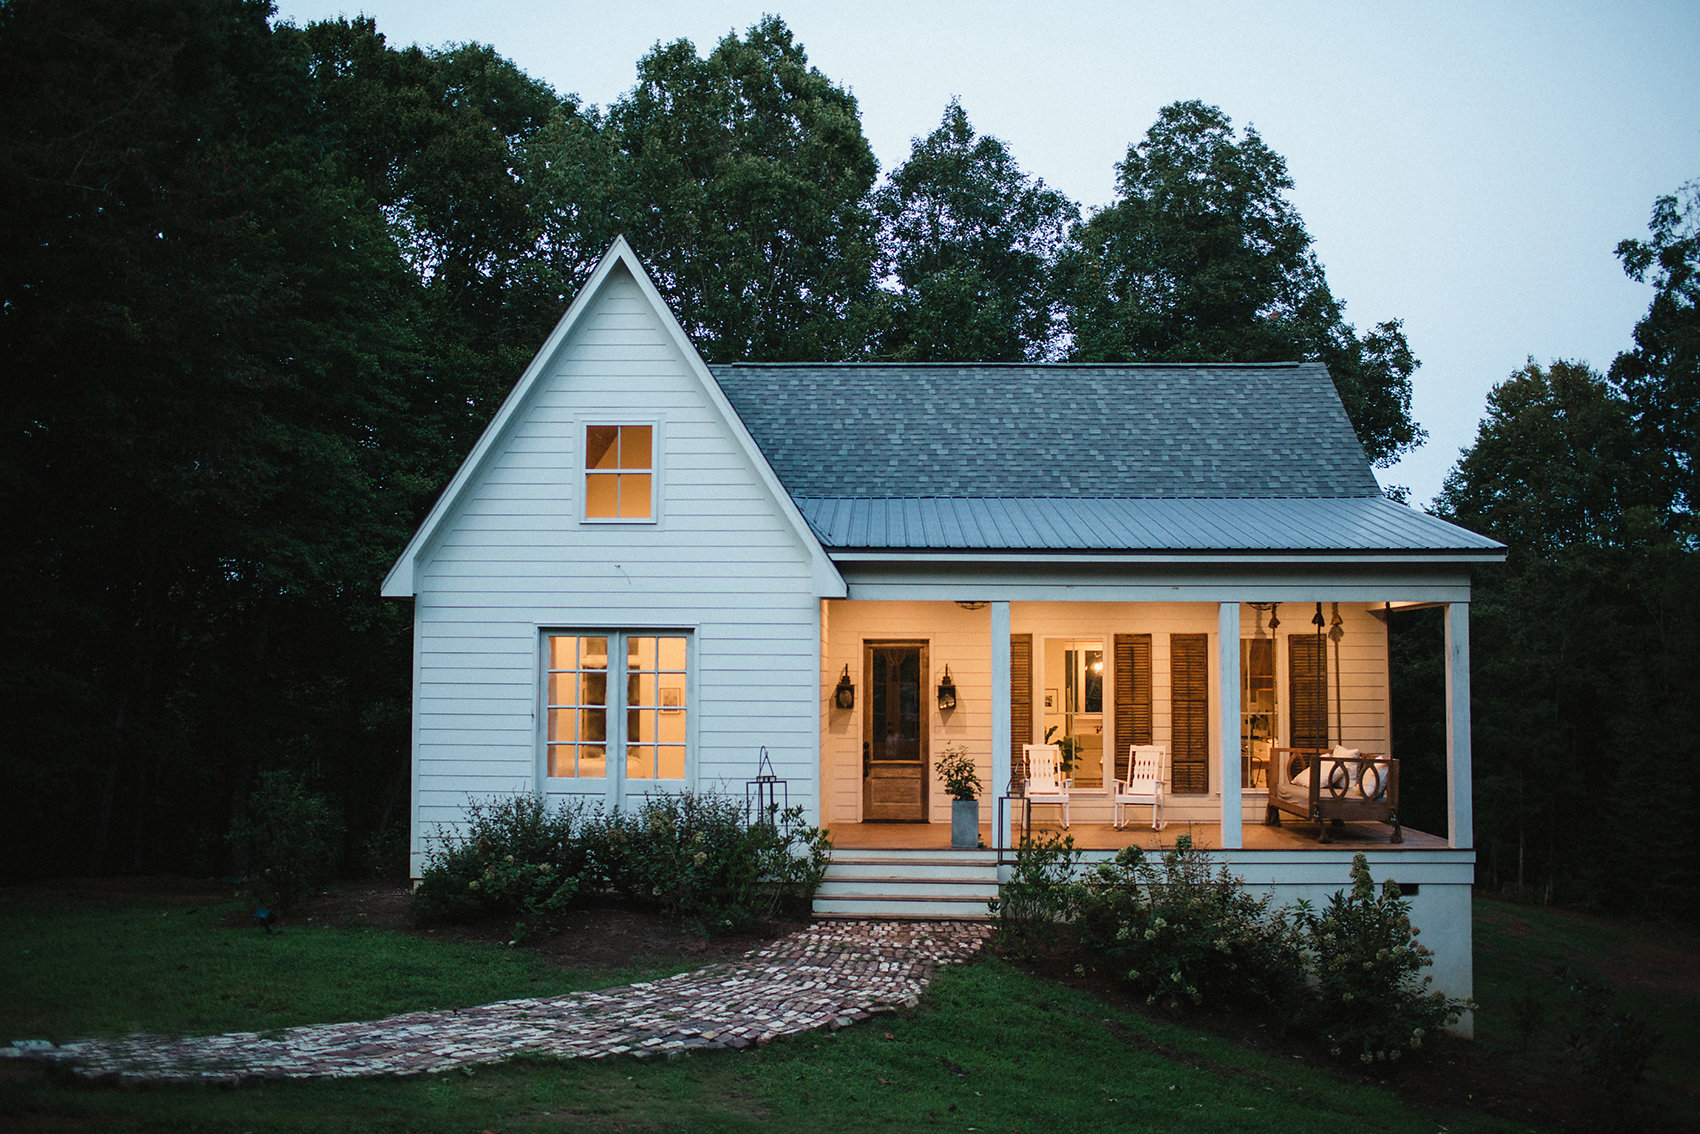 A mississippi home that gave new life to an old farmhouse for Cheap barn style homes